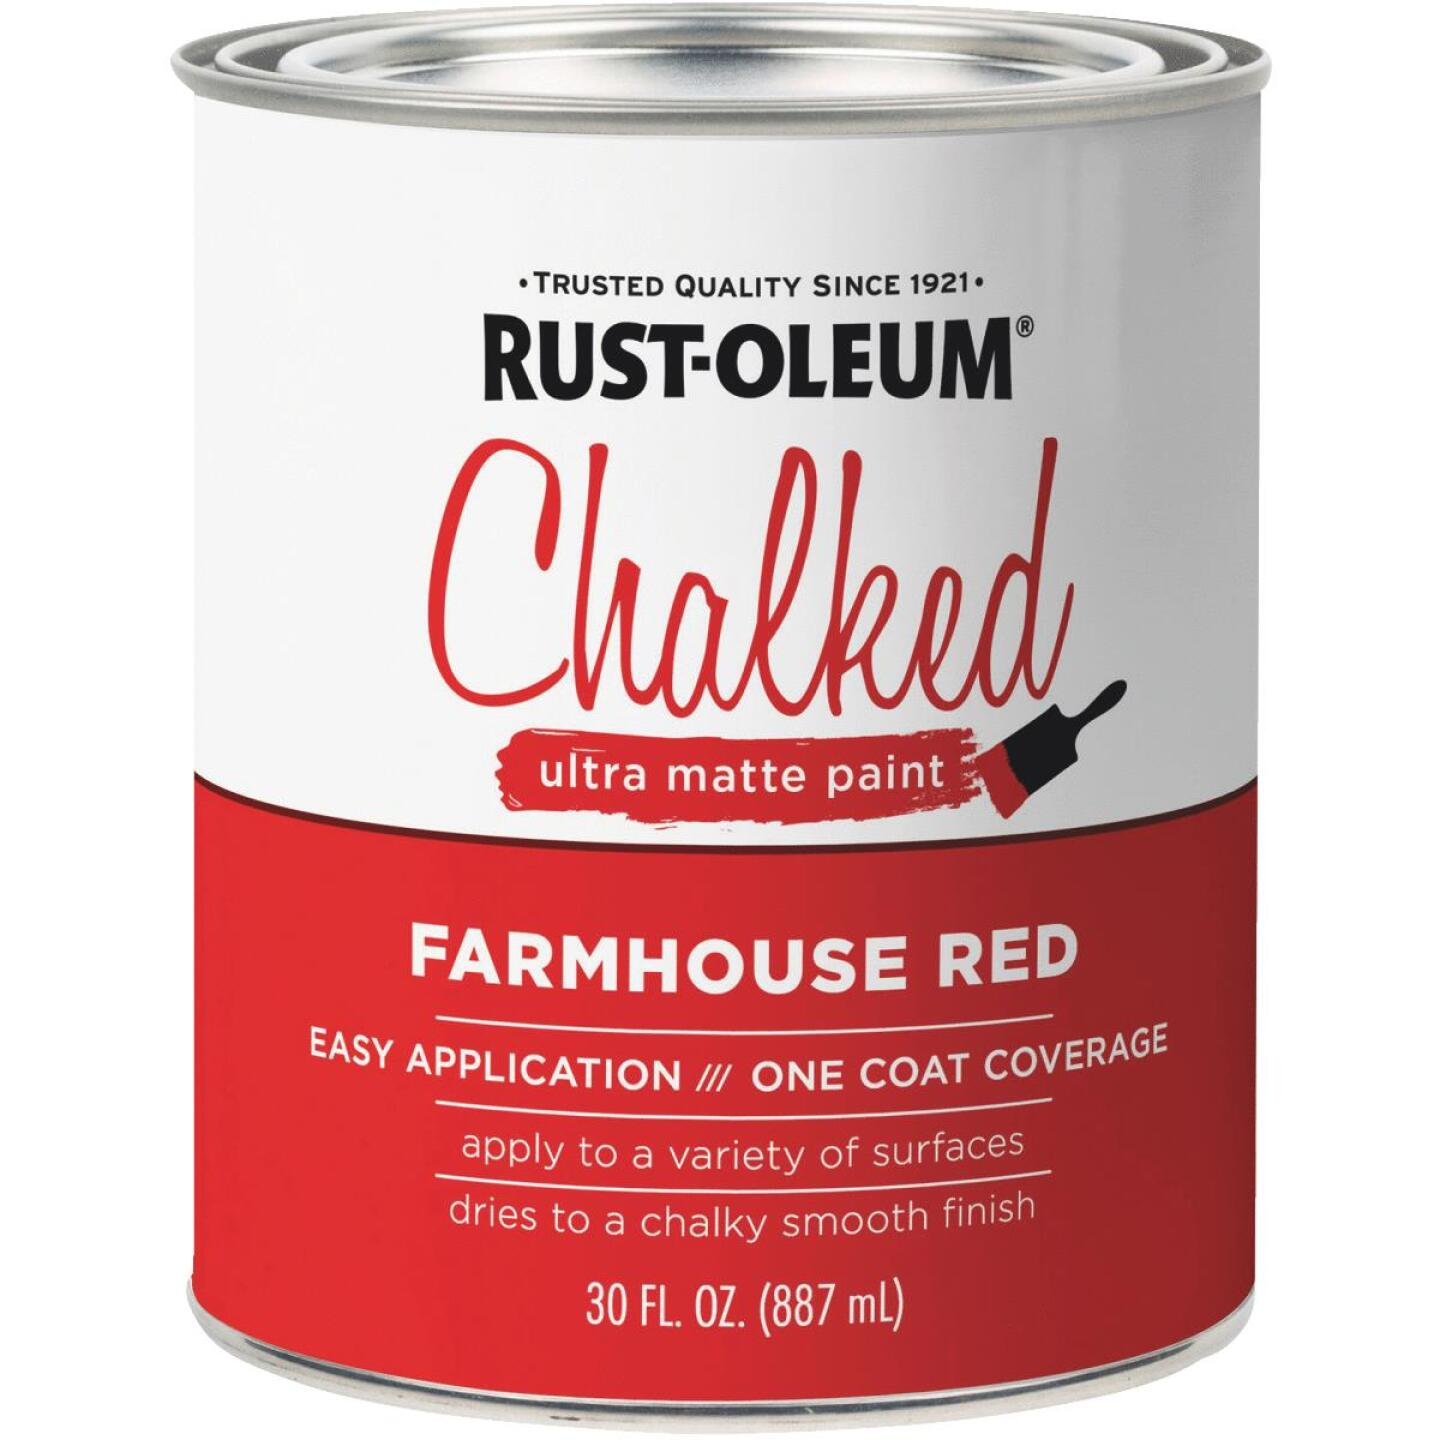 Rust-Oleum Chalked Ultra Matte Farmhouse Red 30 Oz. Chalk Paint Image 1